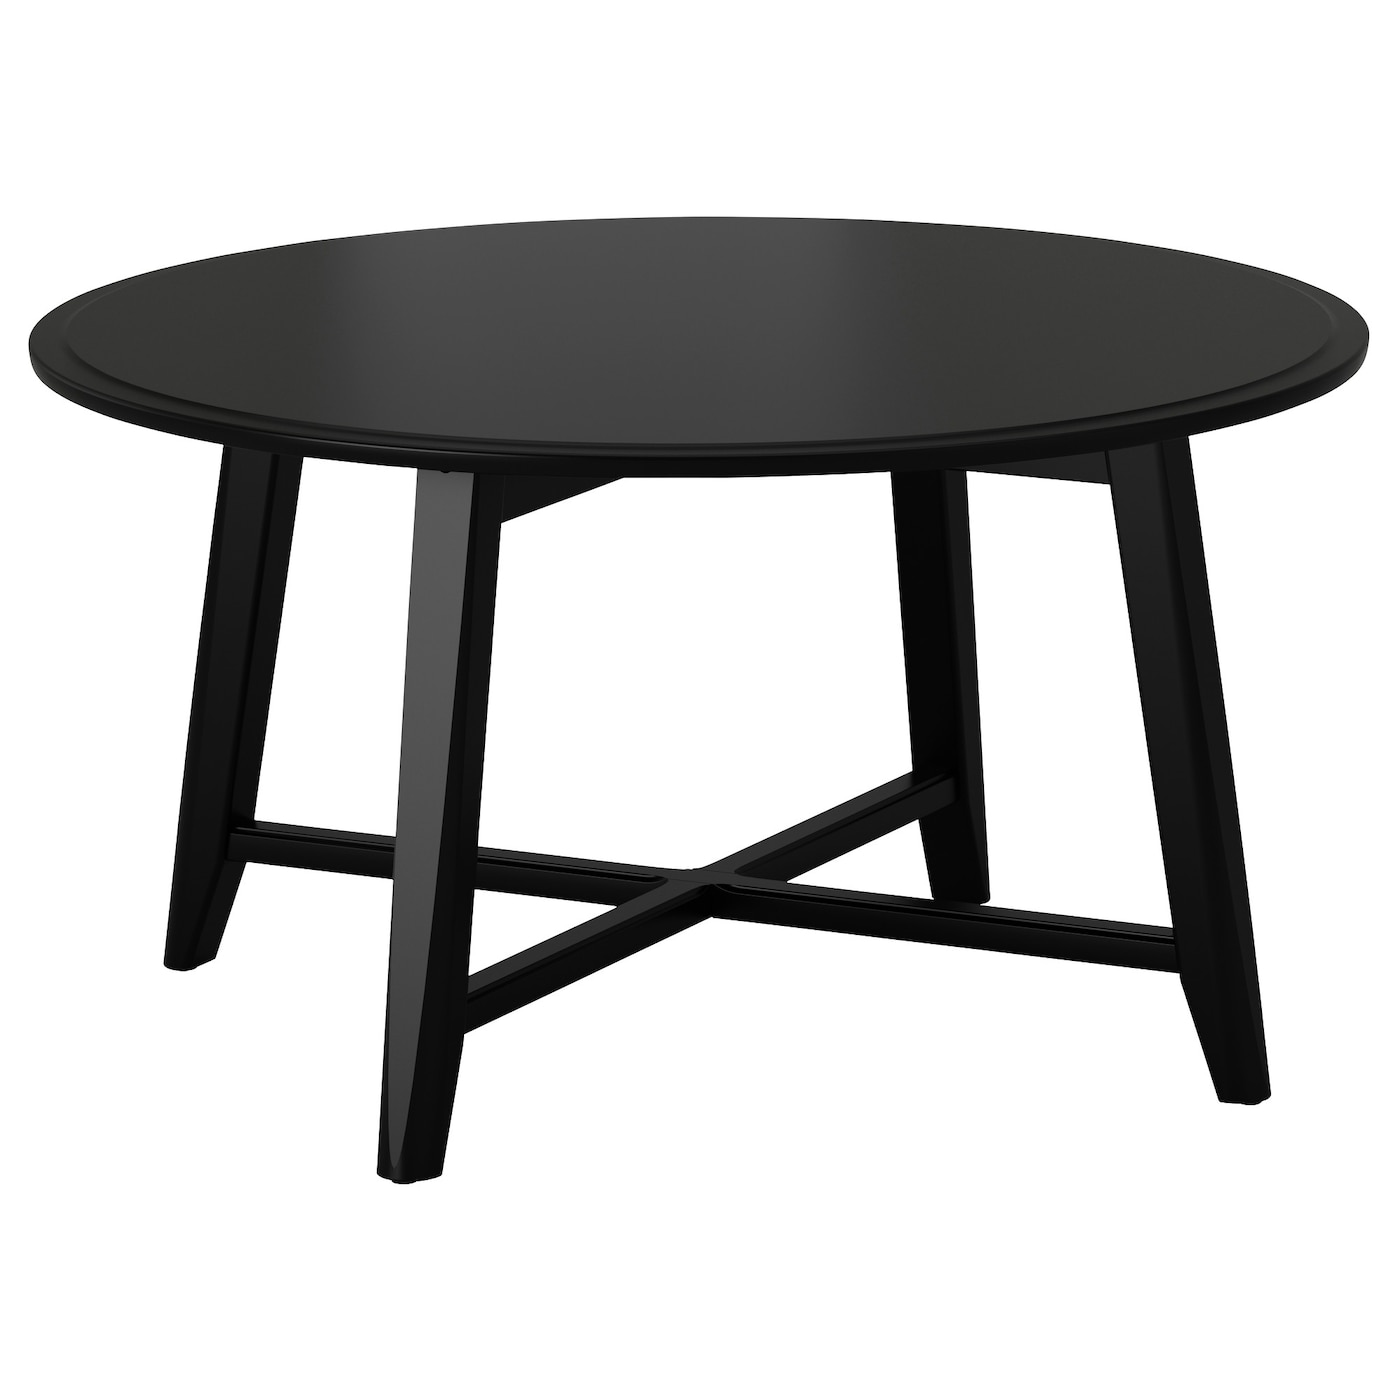 Kragsta coffee table black 90 cm ikea - Table balcon suspendue ikea ...